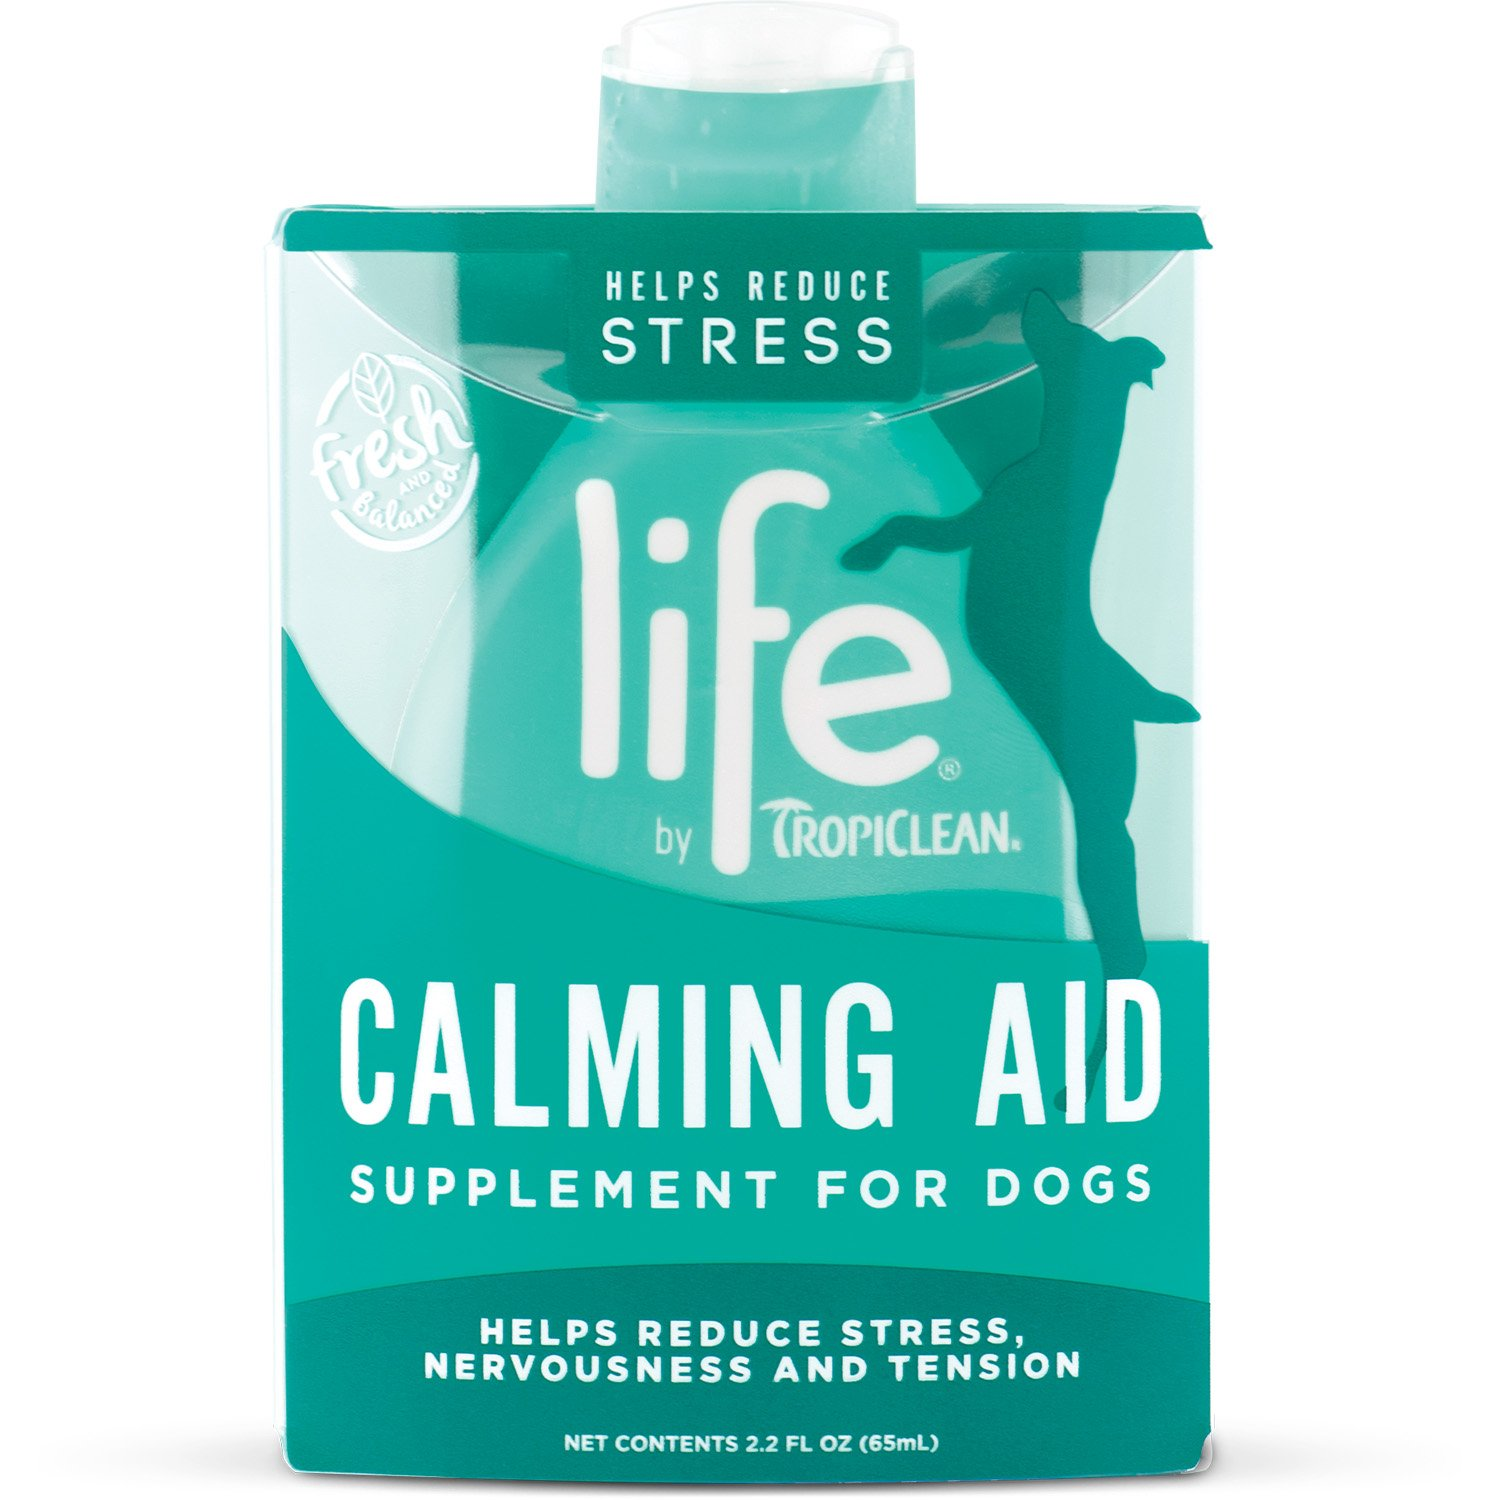 TropiClean Life Calming Aid Supplement for Dogs, 2.2oz, Made in USA by TropiClean